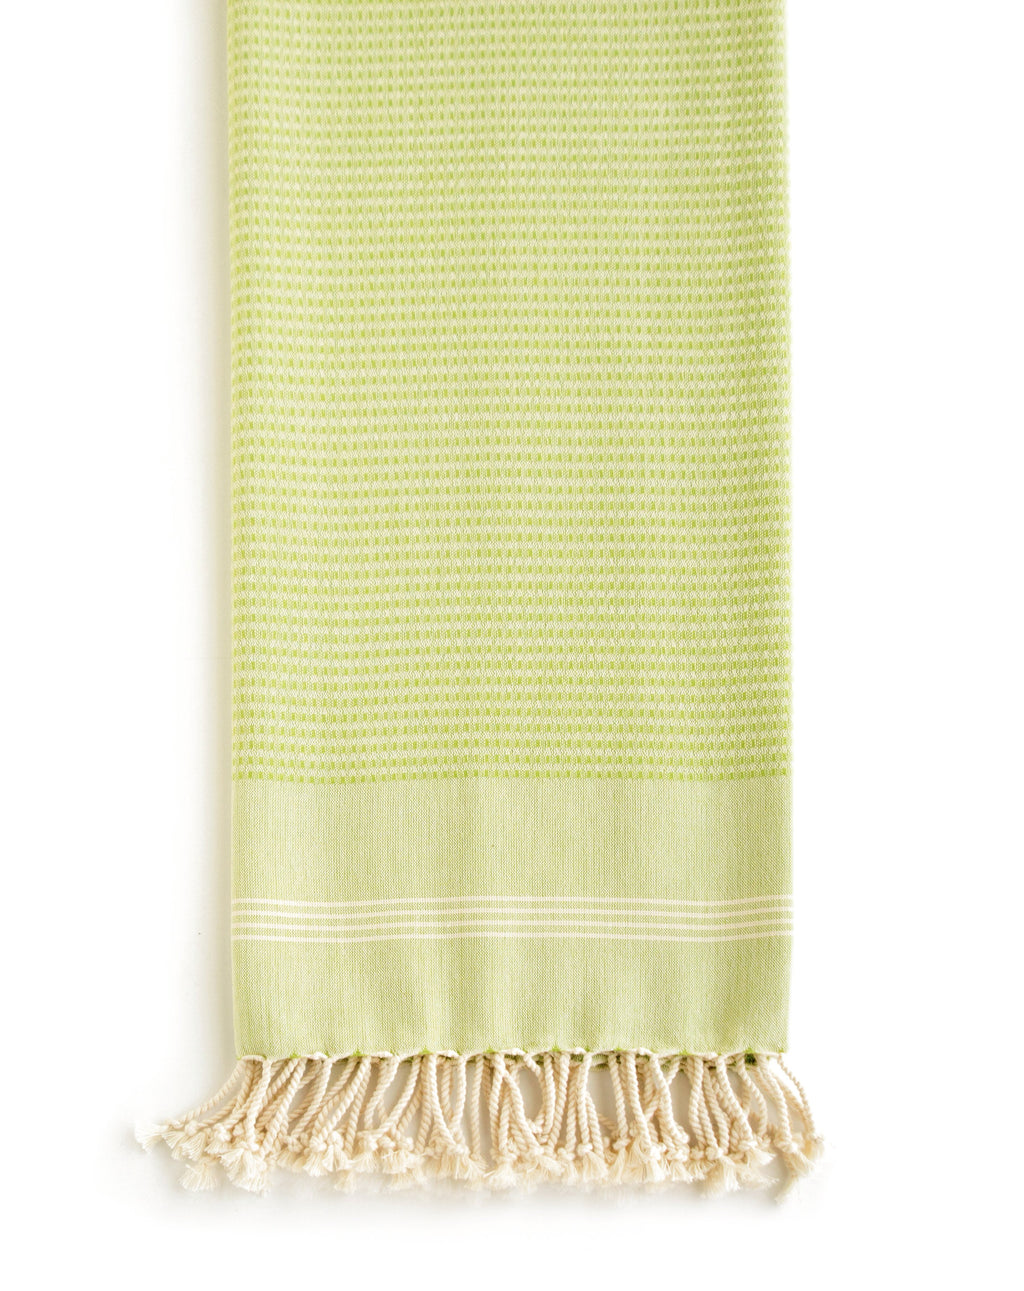 Handloom Cotton Beach Towel Yoga Towel Turkish Towel Lila - Babazen